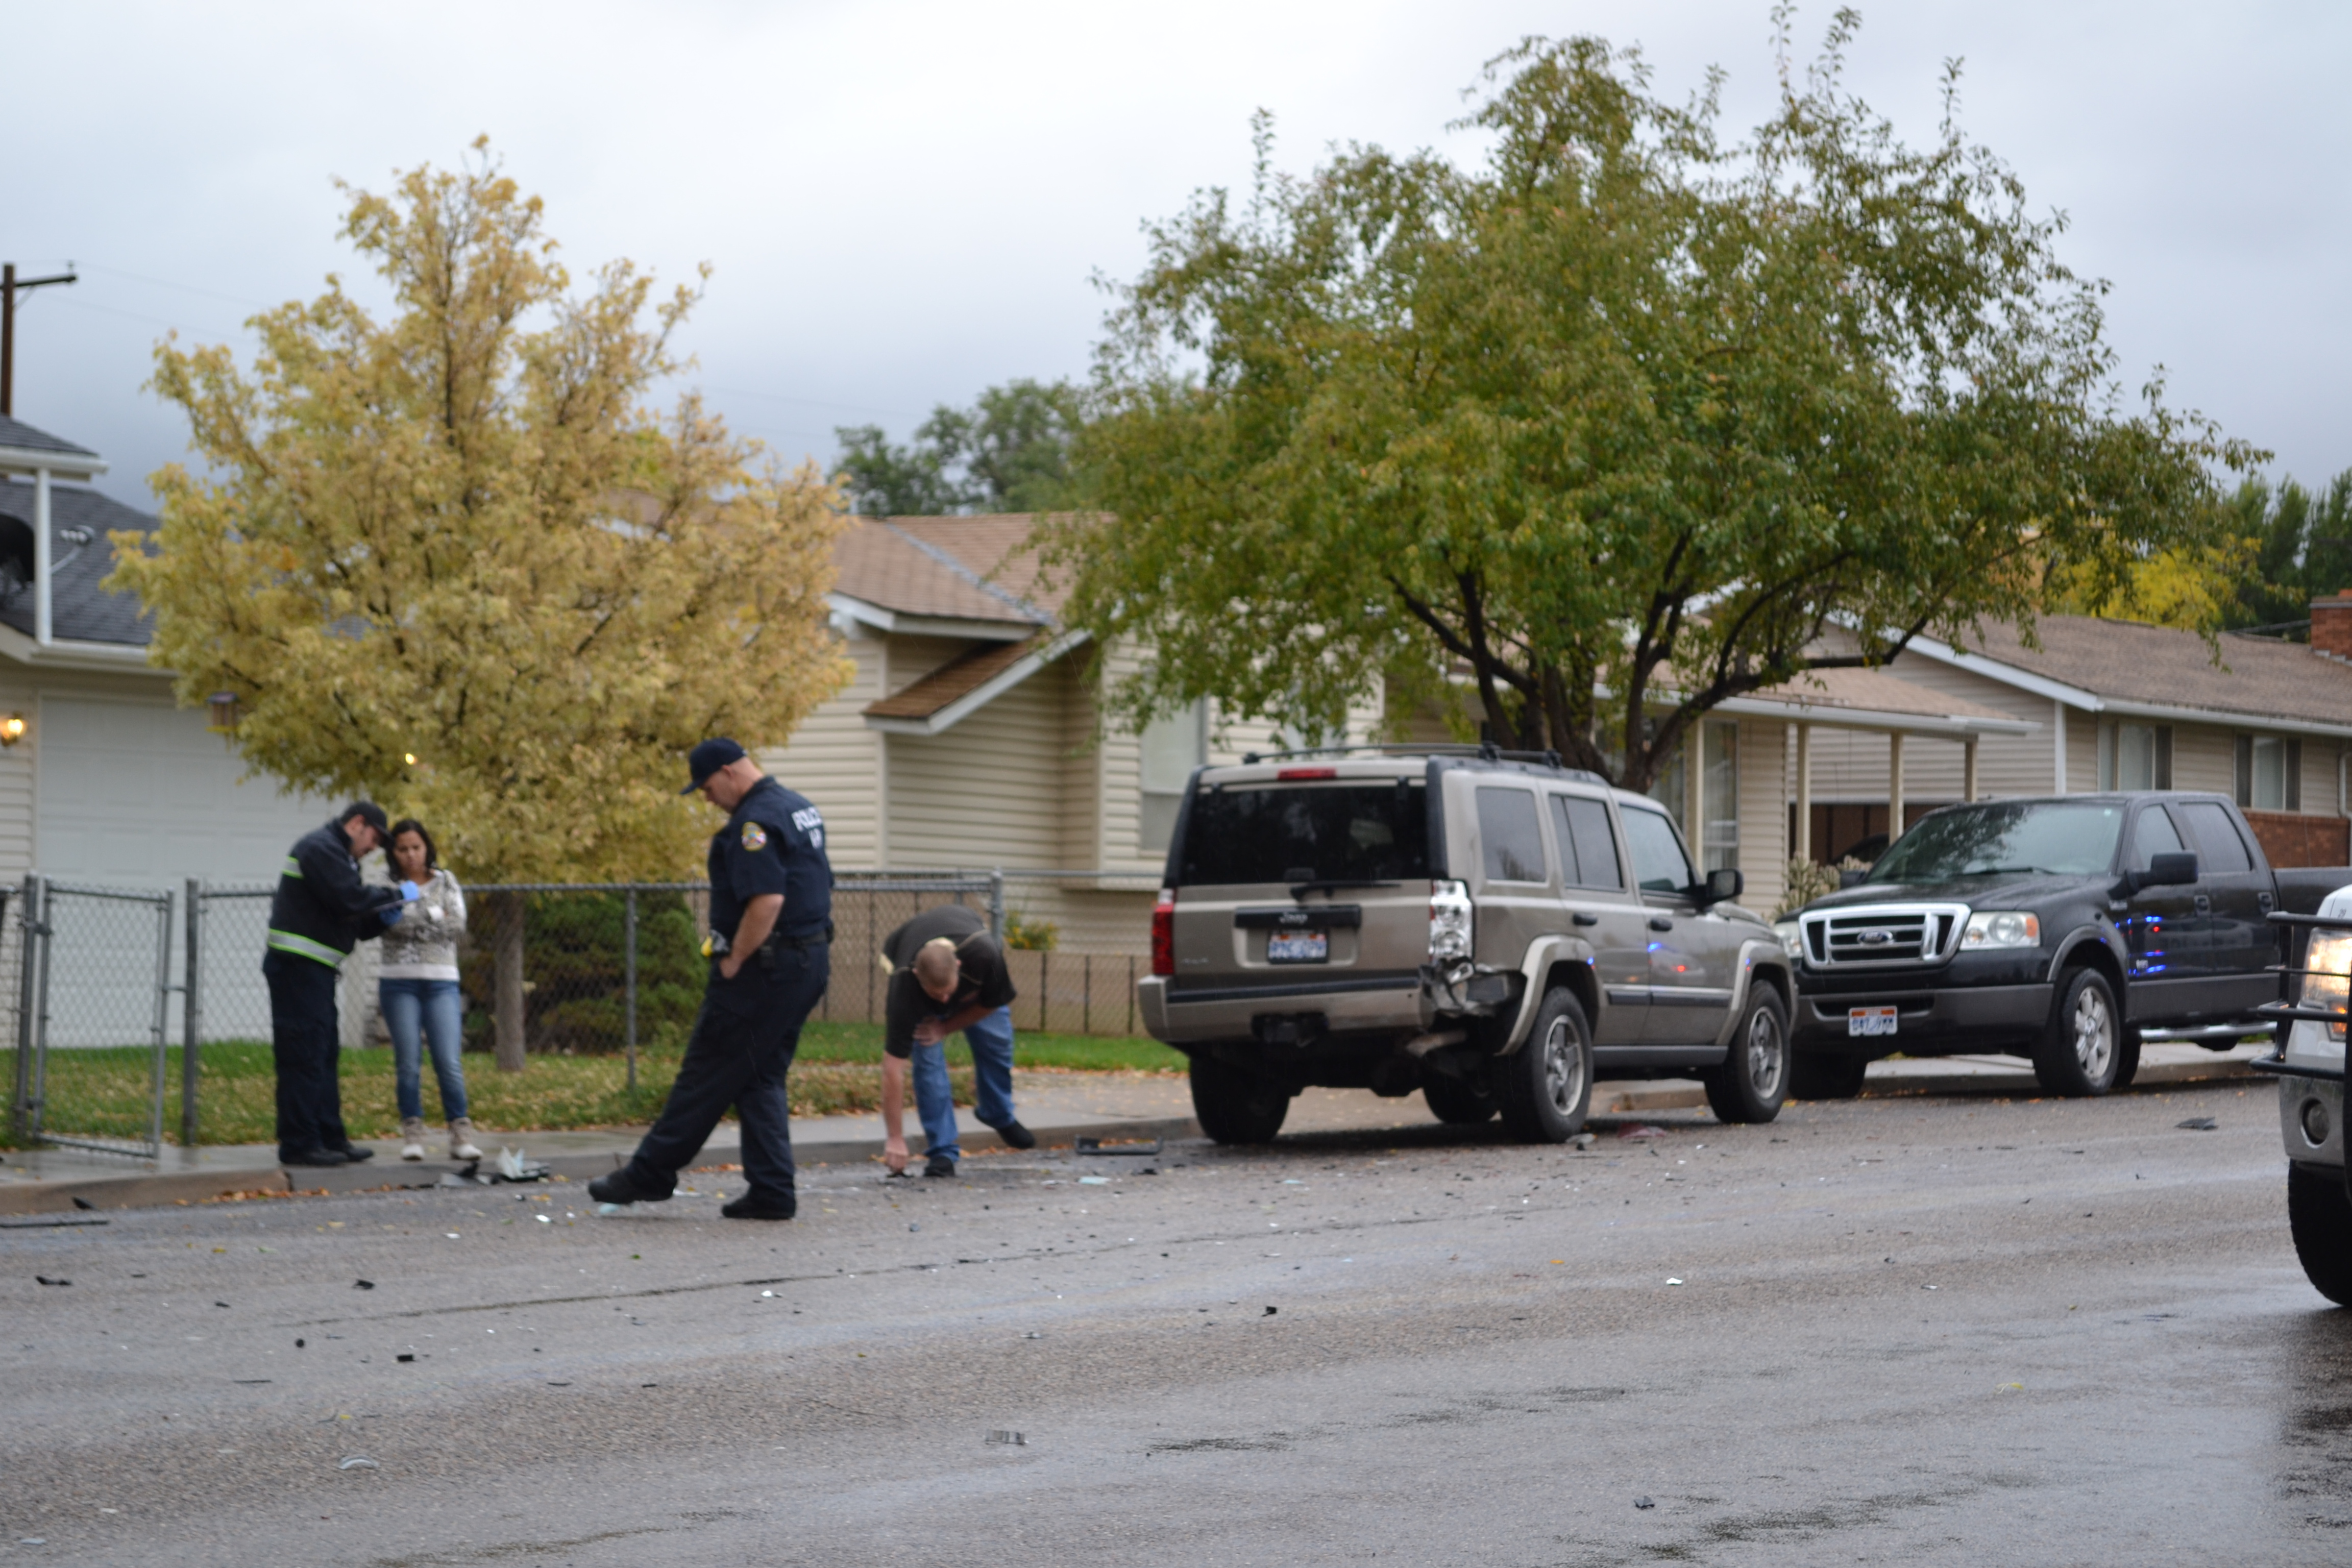 A Jeep backing out of a driveway struck an Optima, Cedar City, Utah, Oct. 29, 2015 | Photo by Emily Hammer, St. George News